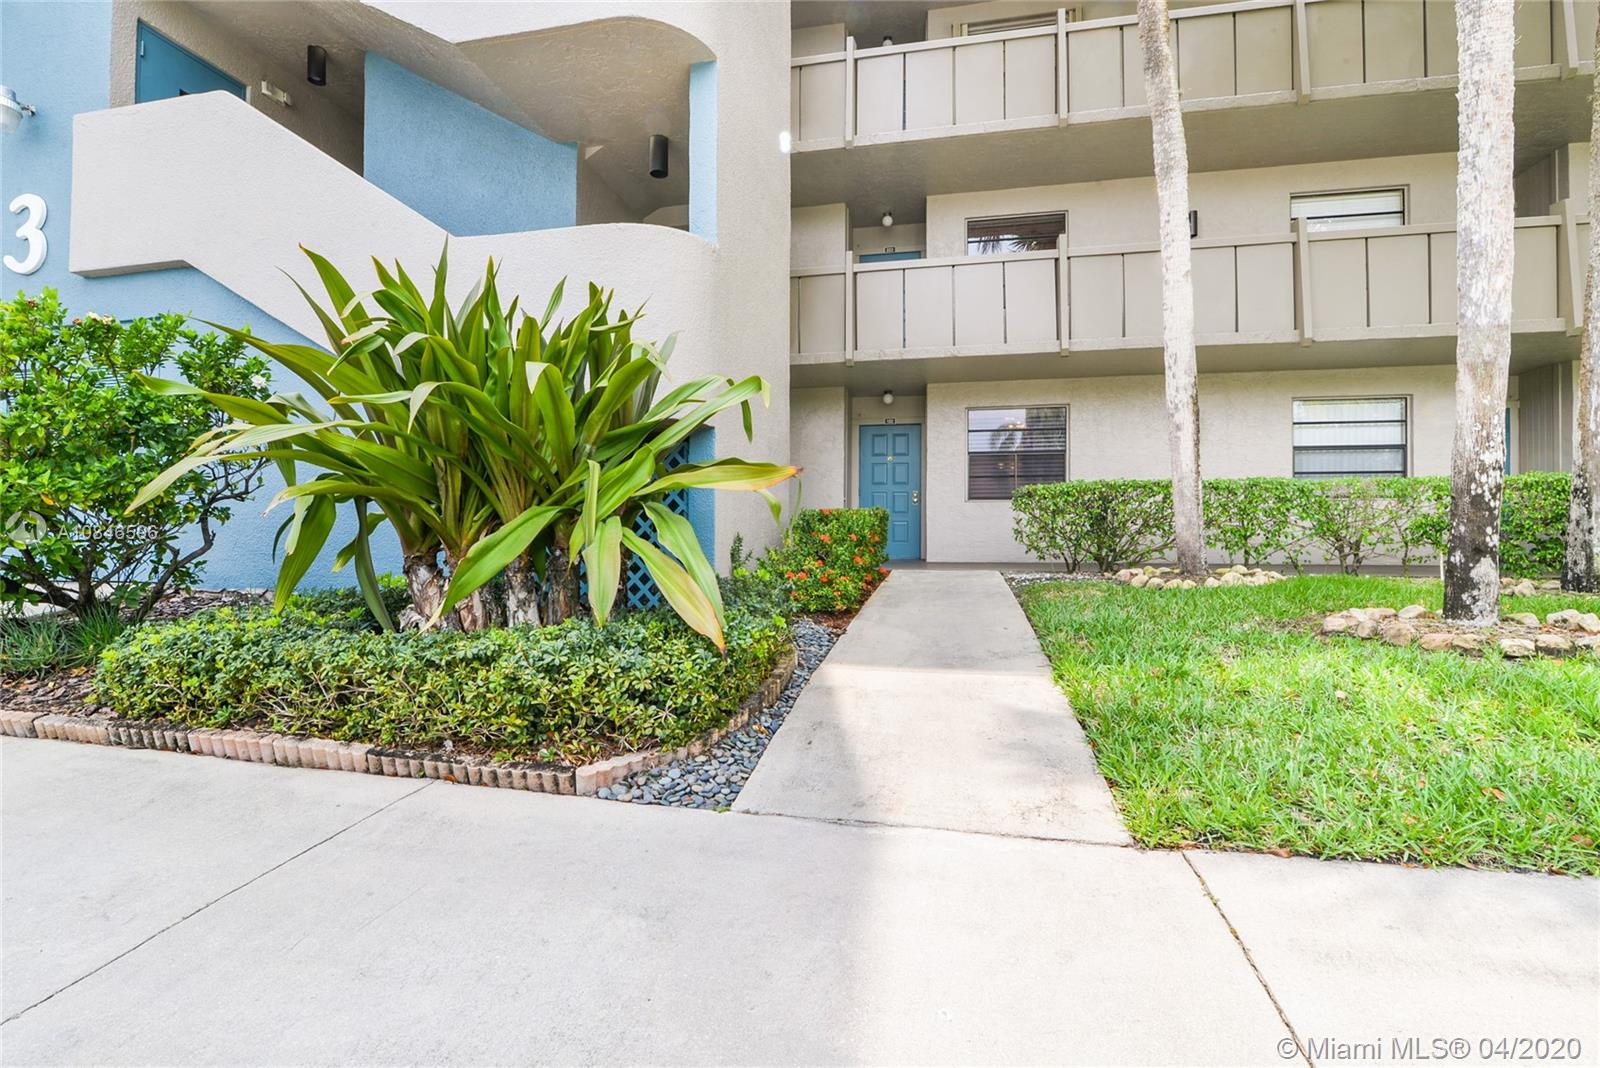 1100 Colony Point Cir # 122, Pembroke Pines, Florida 33026, 2 Bedrooms Bedrooms, ,2 BathroomsBathrooms,Residential,For Sale,1100 Colony Point Cir # 122,A10846596